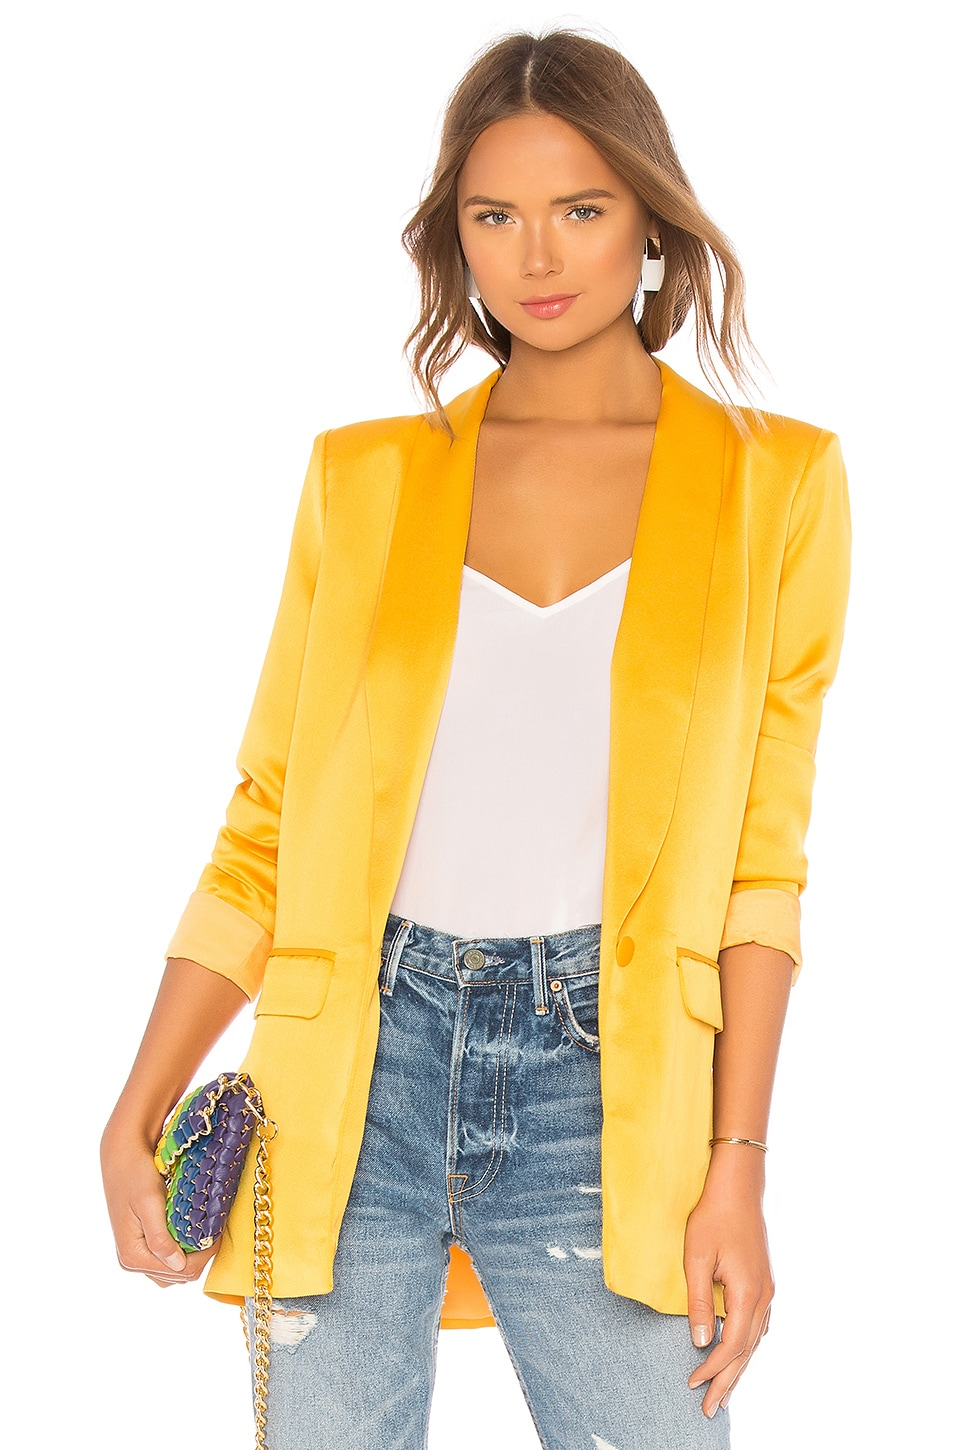 L'Academie The Fleur Blazer in Mustard Yellow